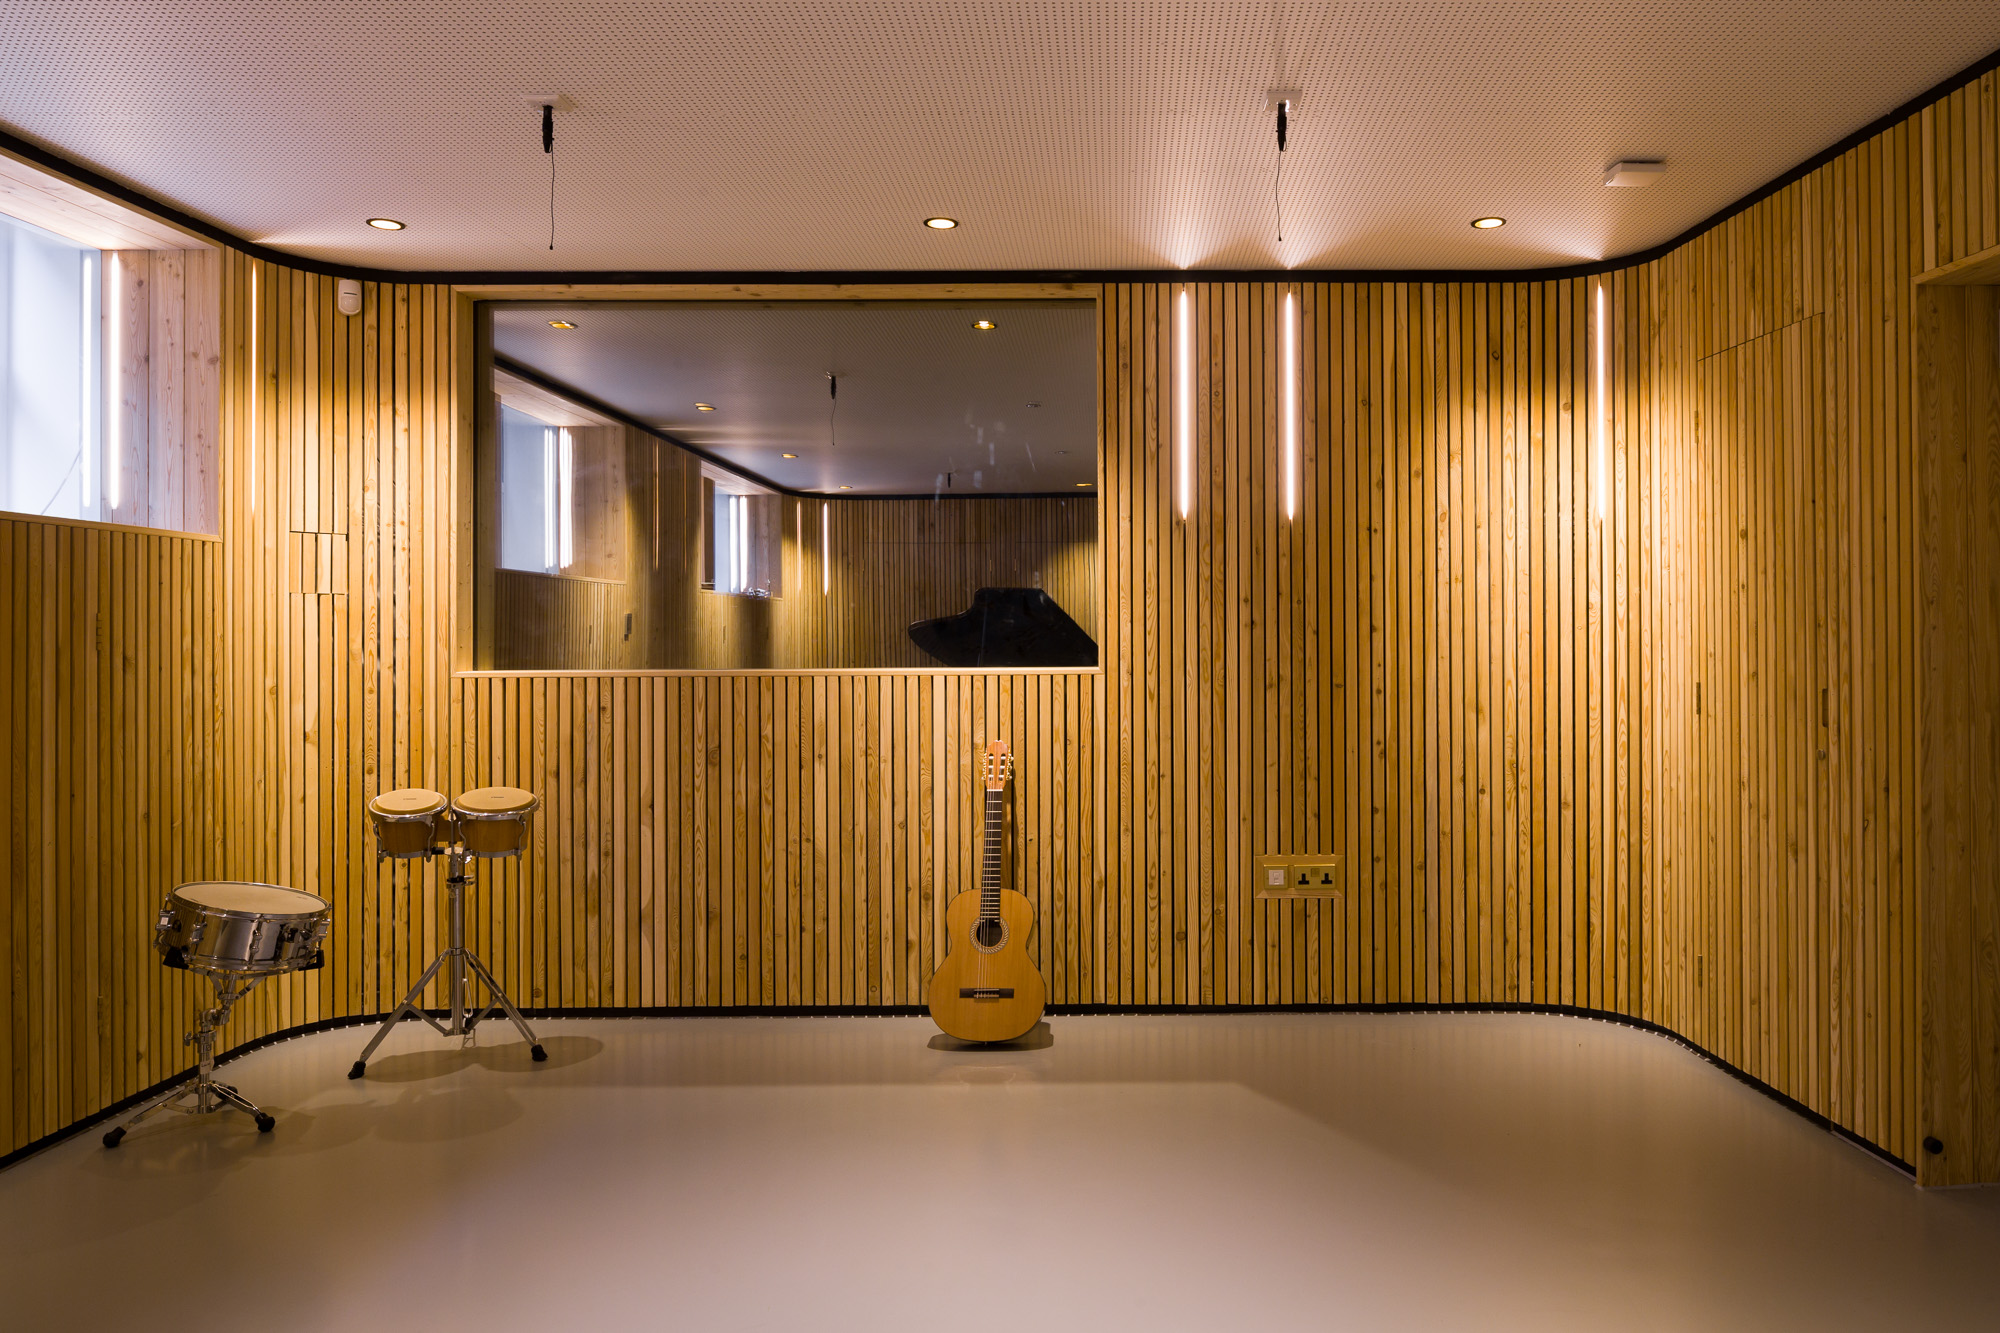 Music room walls layered with timber battens.